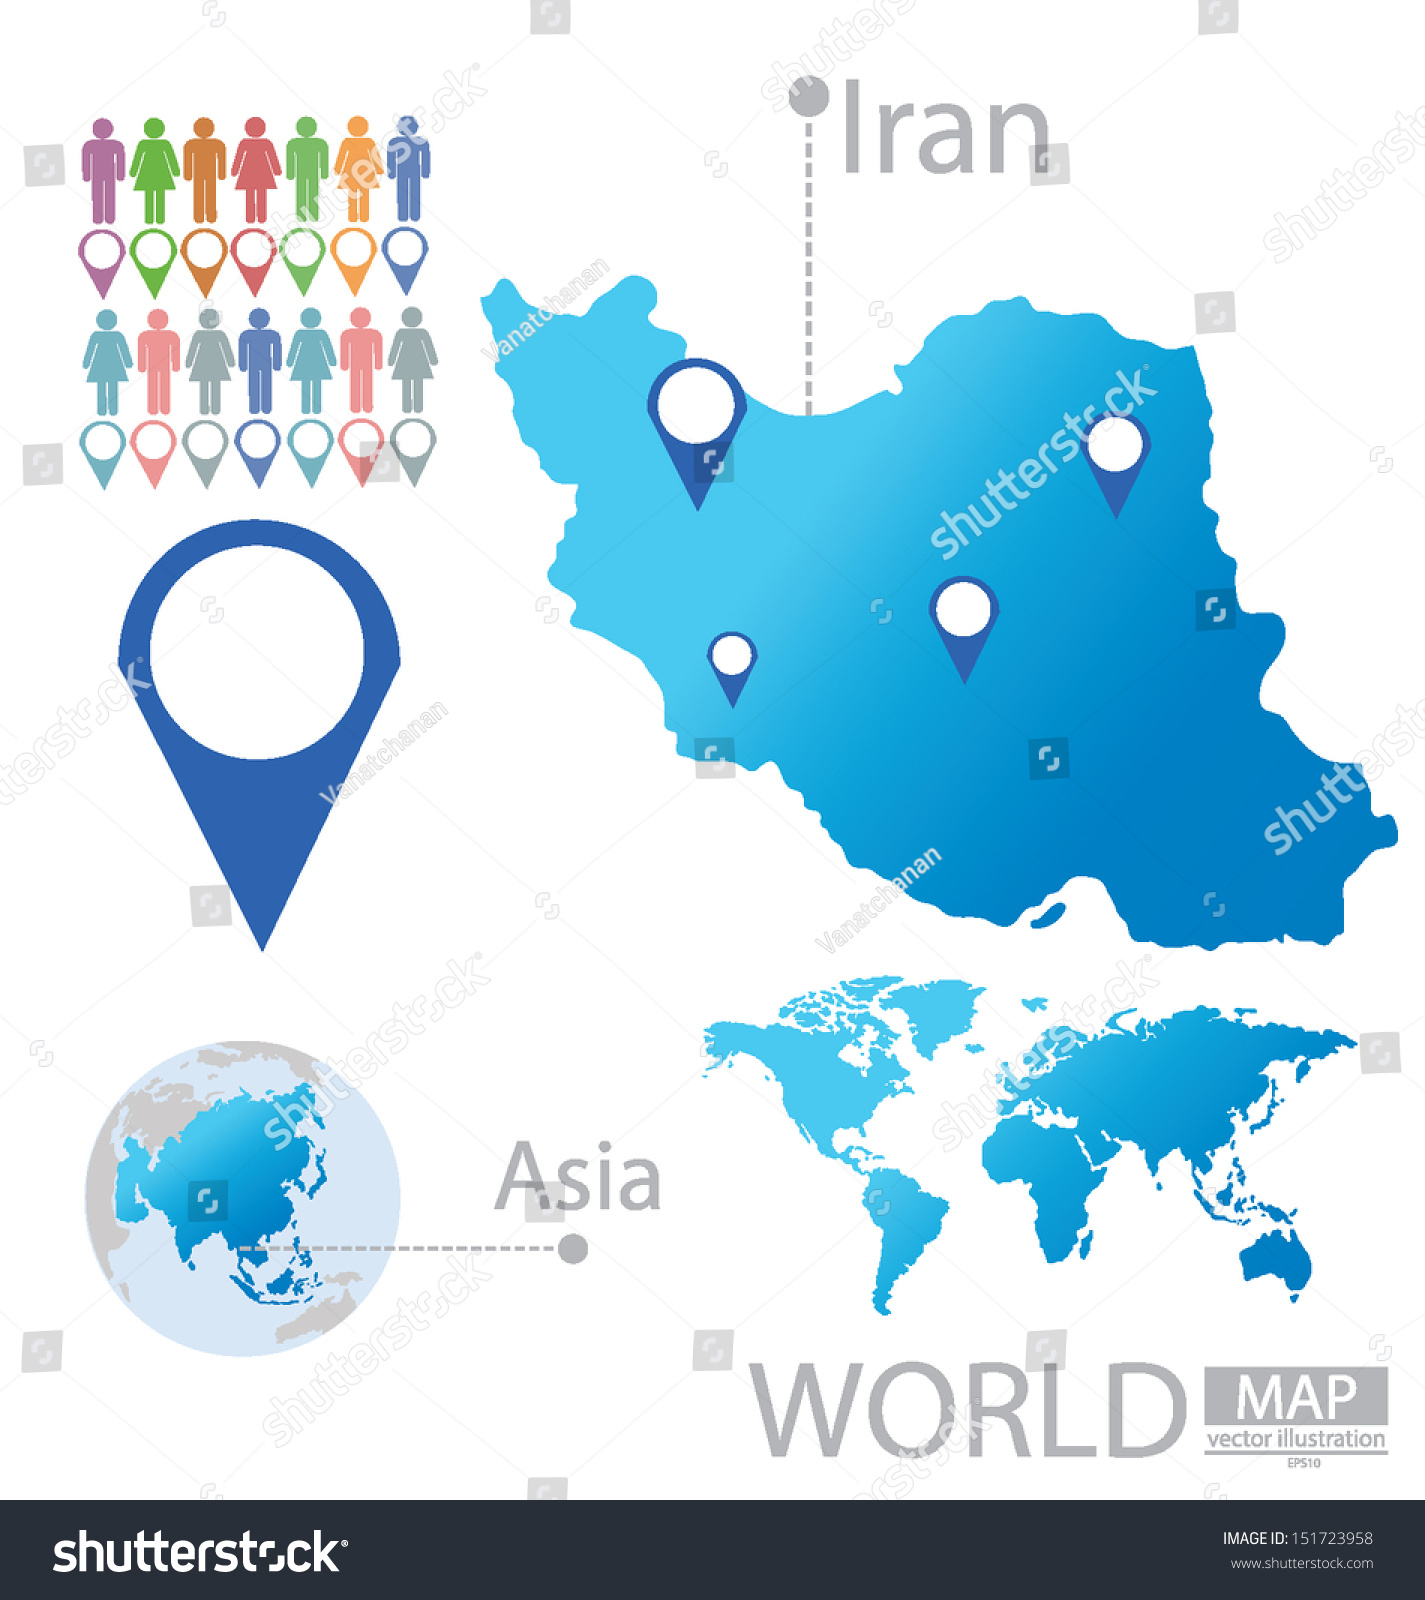 Iran asia world map vector illustration stock vector 151723958 iran asia world map vector illustration stock vector 151723958 shutterstock gumiabroncs Images